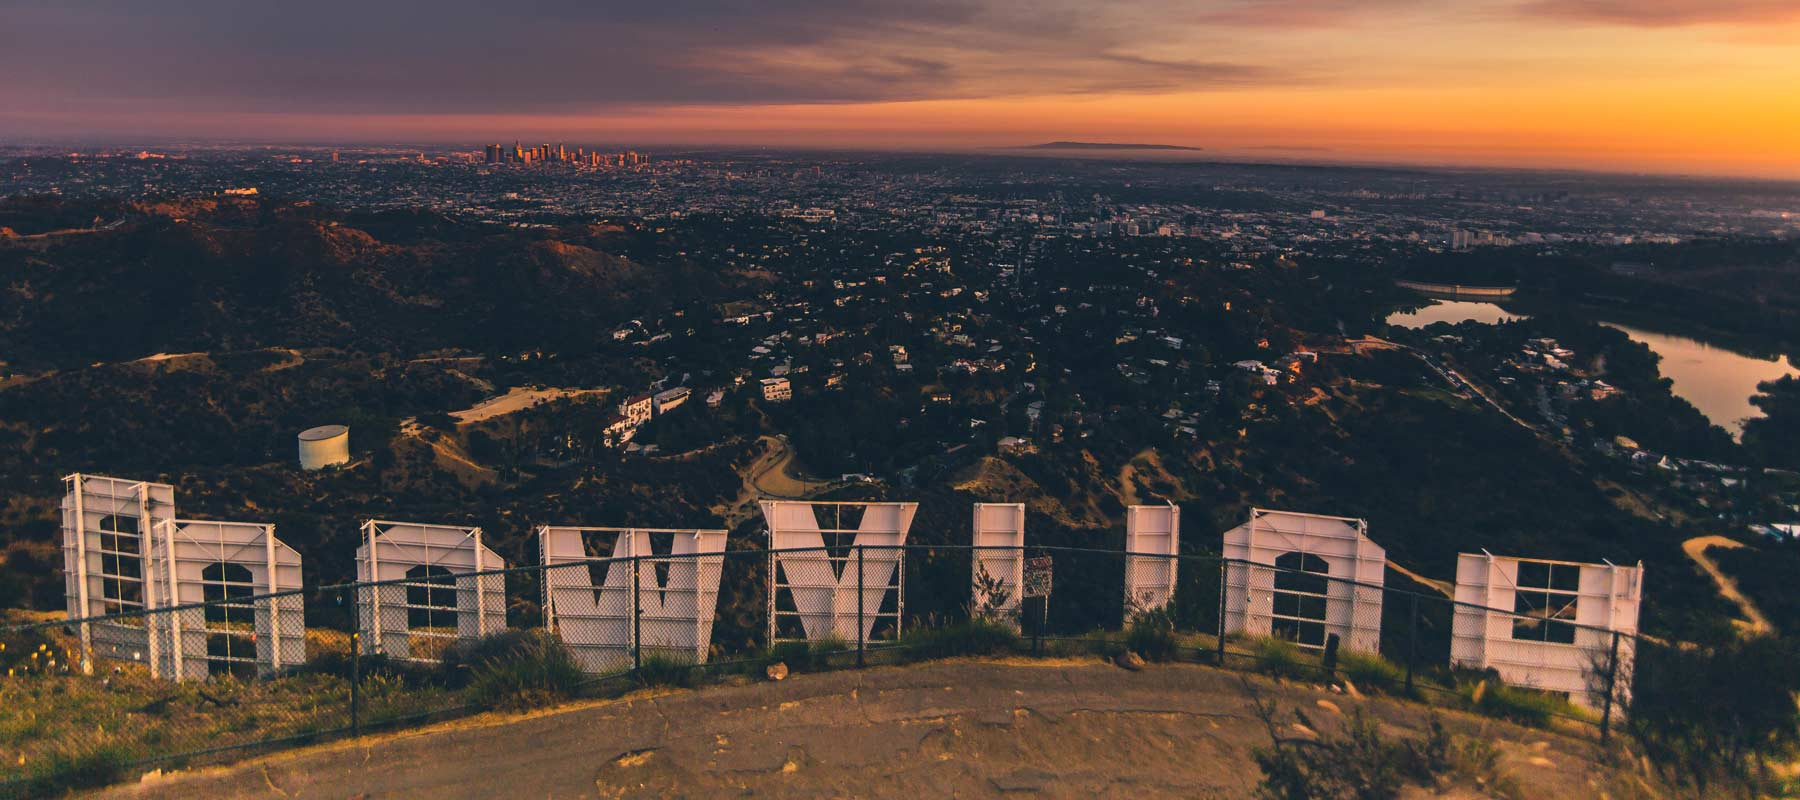 view of los angeles from behind the hollywood sign at dusk